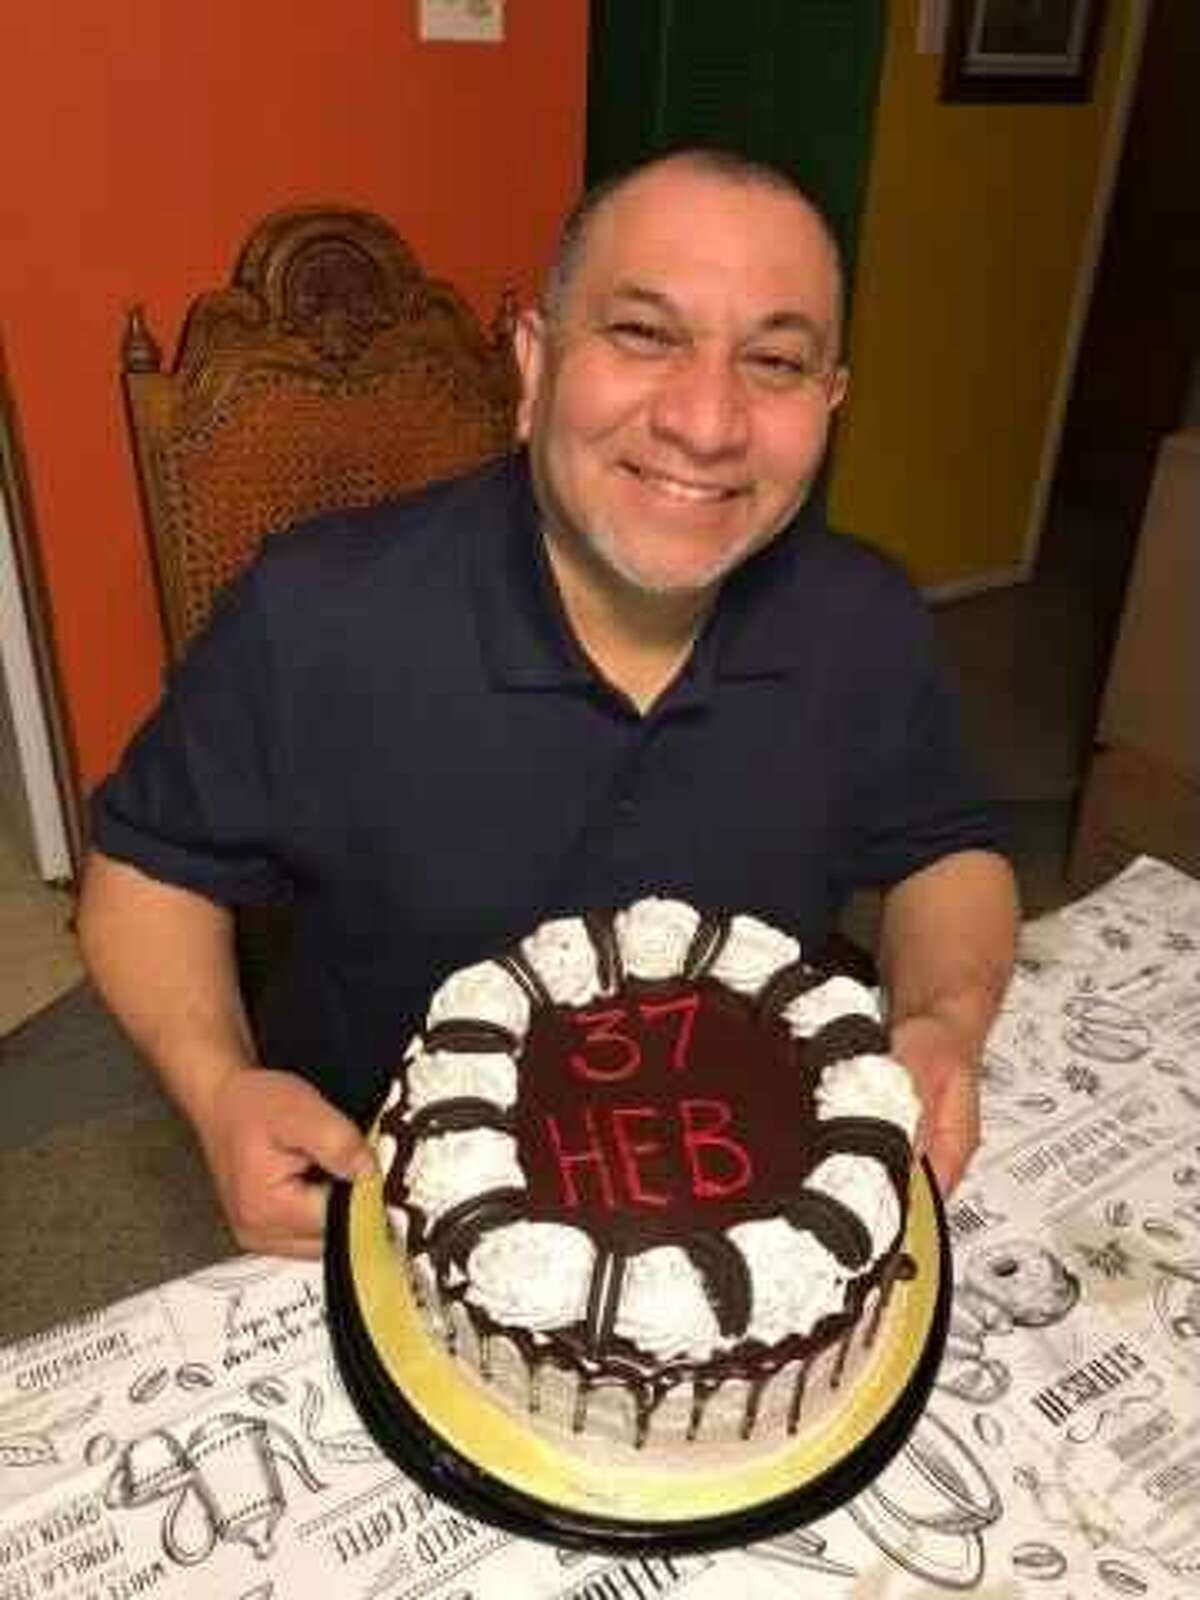 His son, Richard Ortega Jr., said his father worked in the produce department at the H-E-B on 410 and Bandera for 38 years.